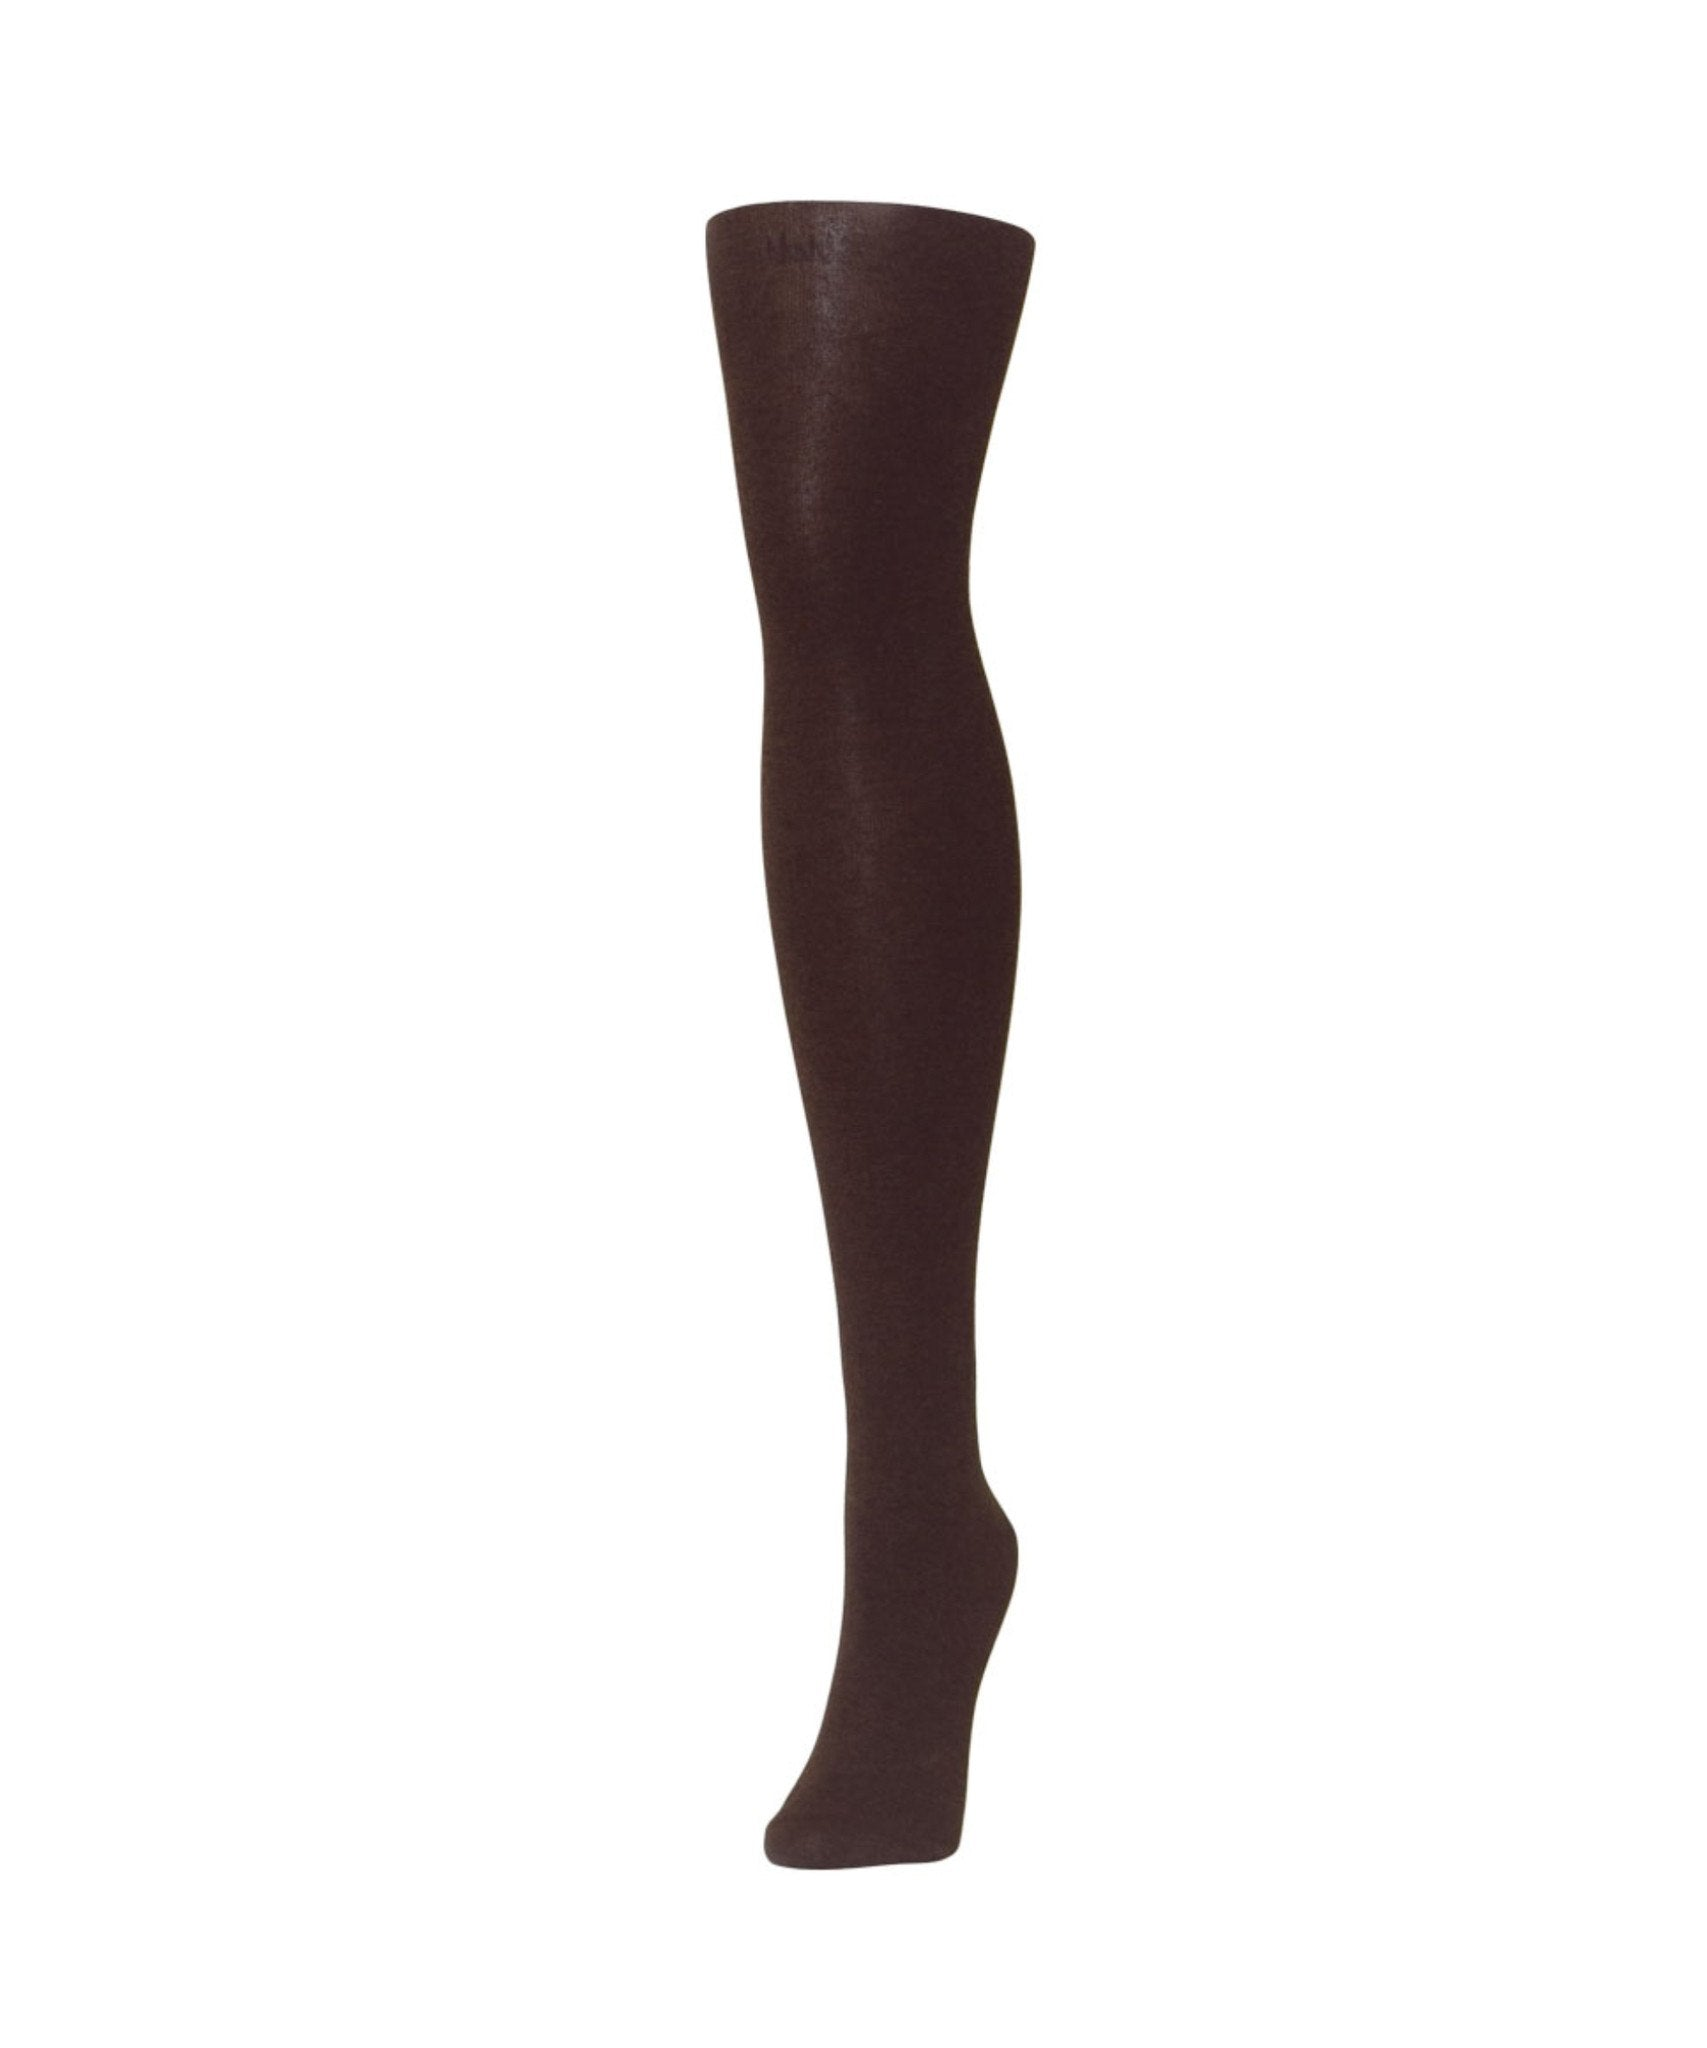 Natural Bamboo Tights - MeMoi - 4